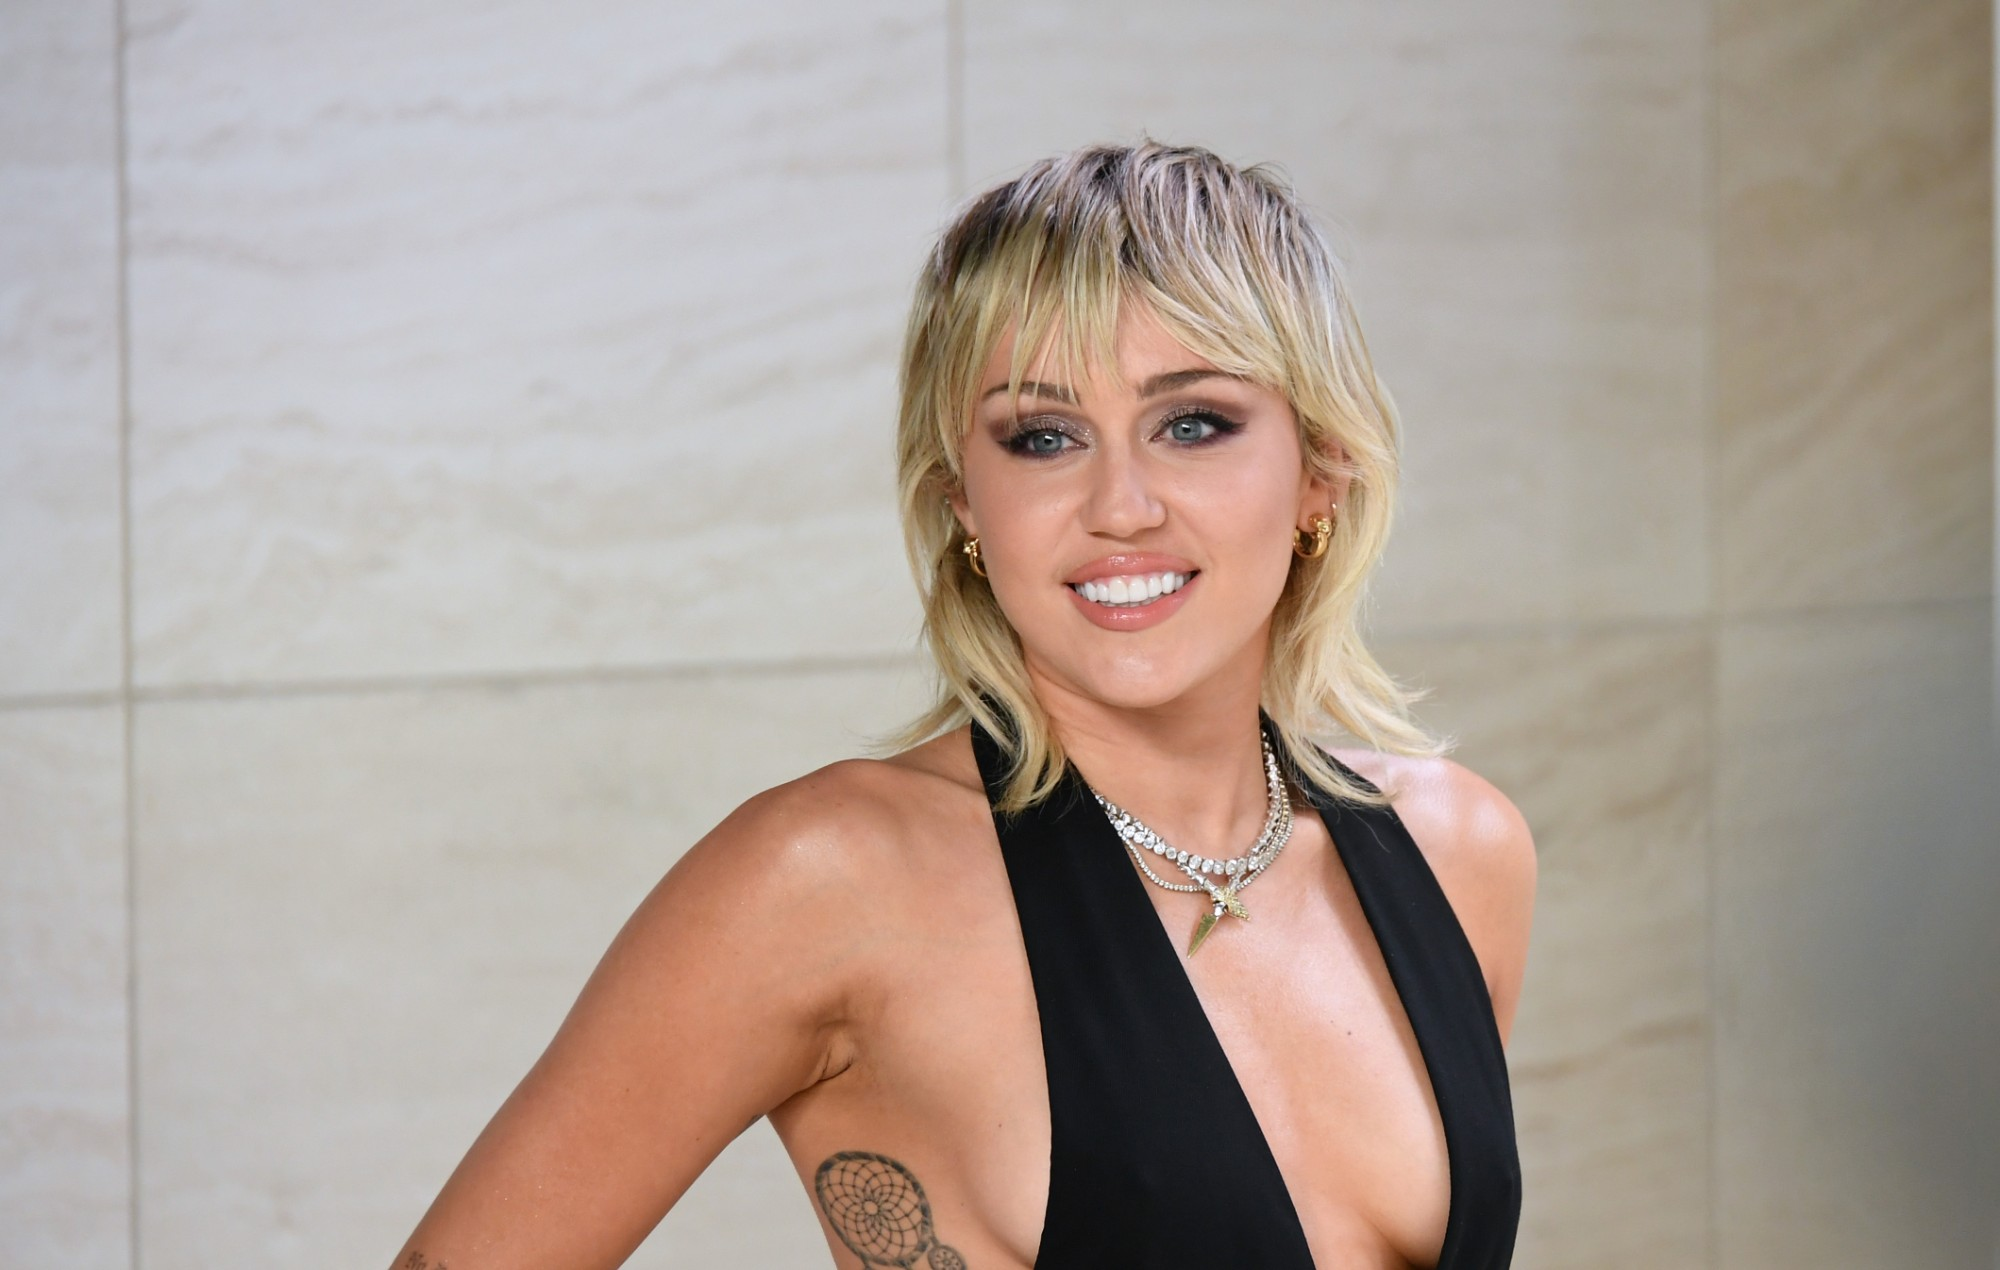 Miley Cyrus teases new music as she tells fans to 'Meet